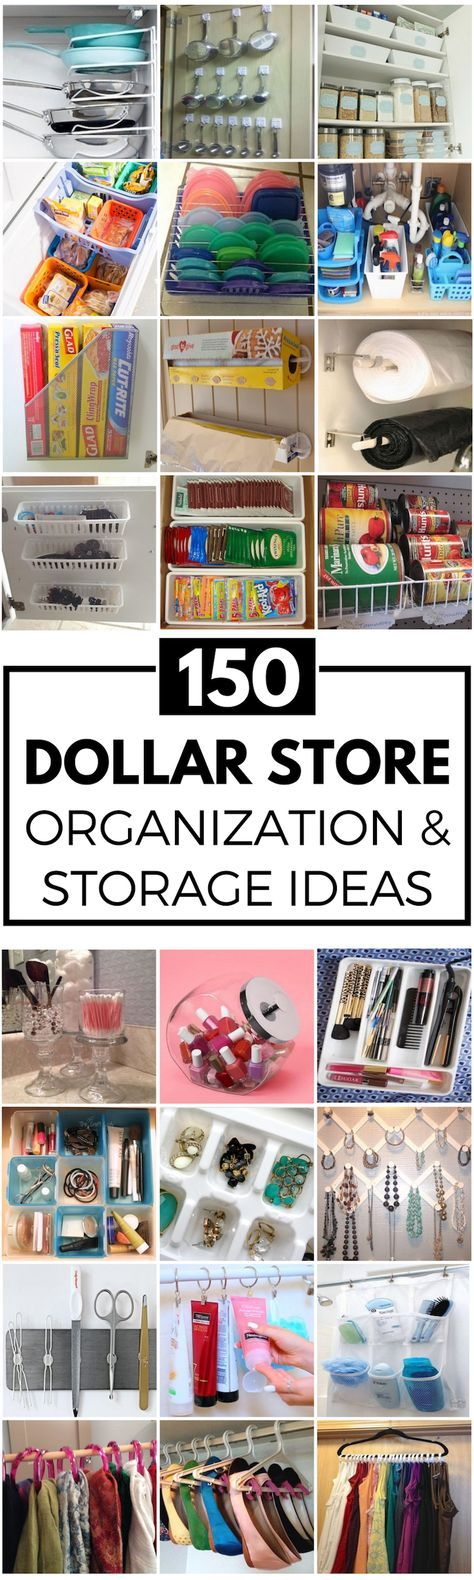 Spring cleaning just got a whole lotcheaper!Organize for less with these creative dollar store organization and storage ideas. There are ideas for every room in your house (kitchen, bathroom, laundry, closet, office and more!) KitchenDollar…